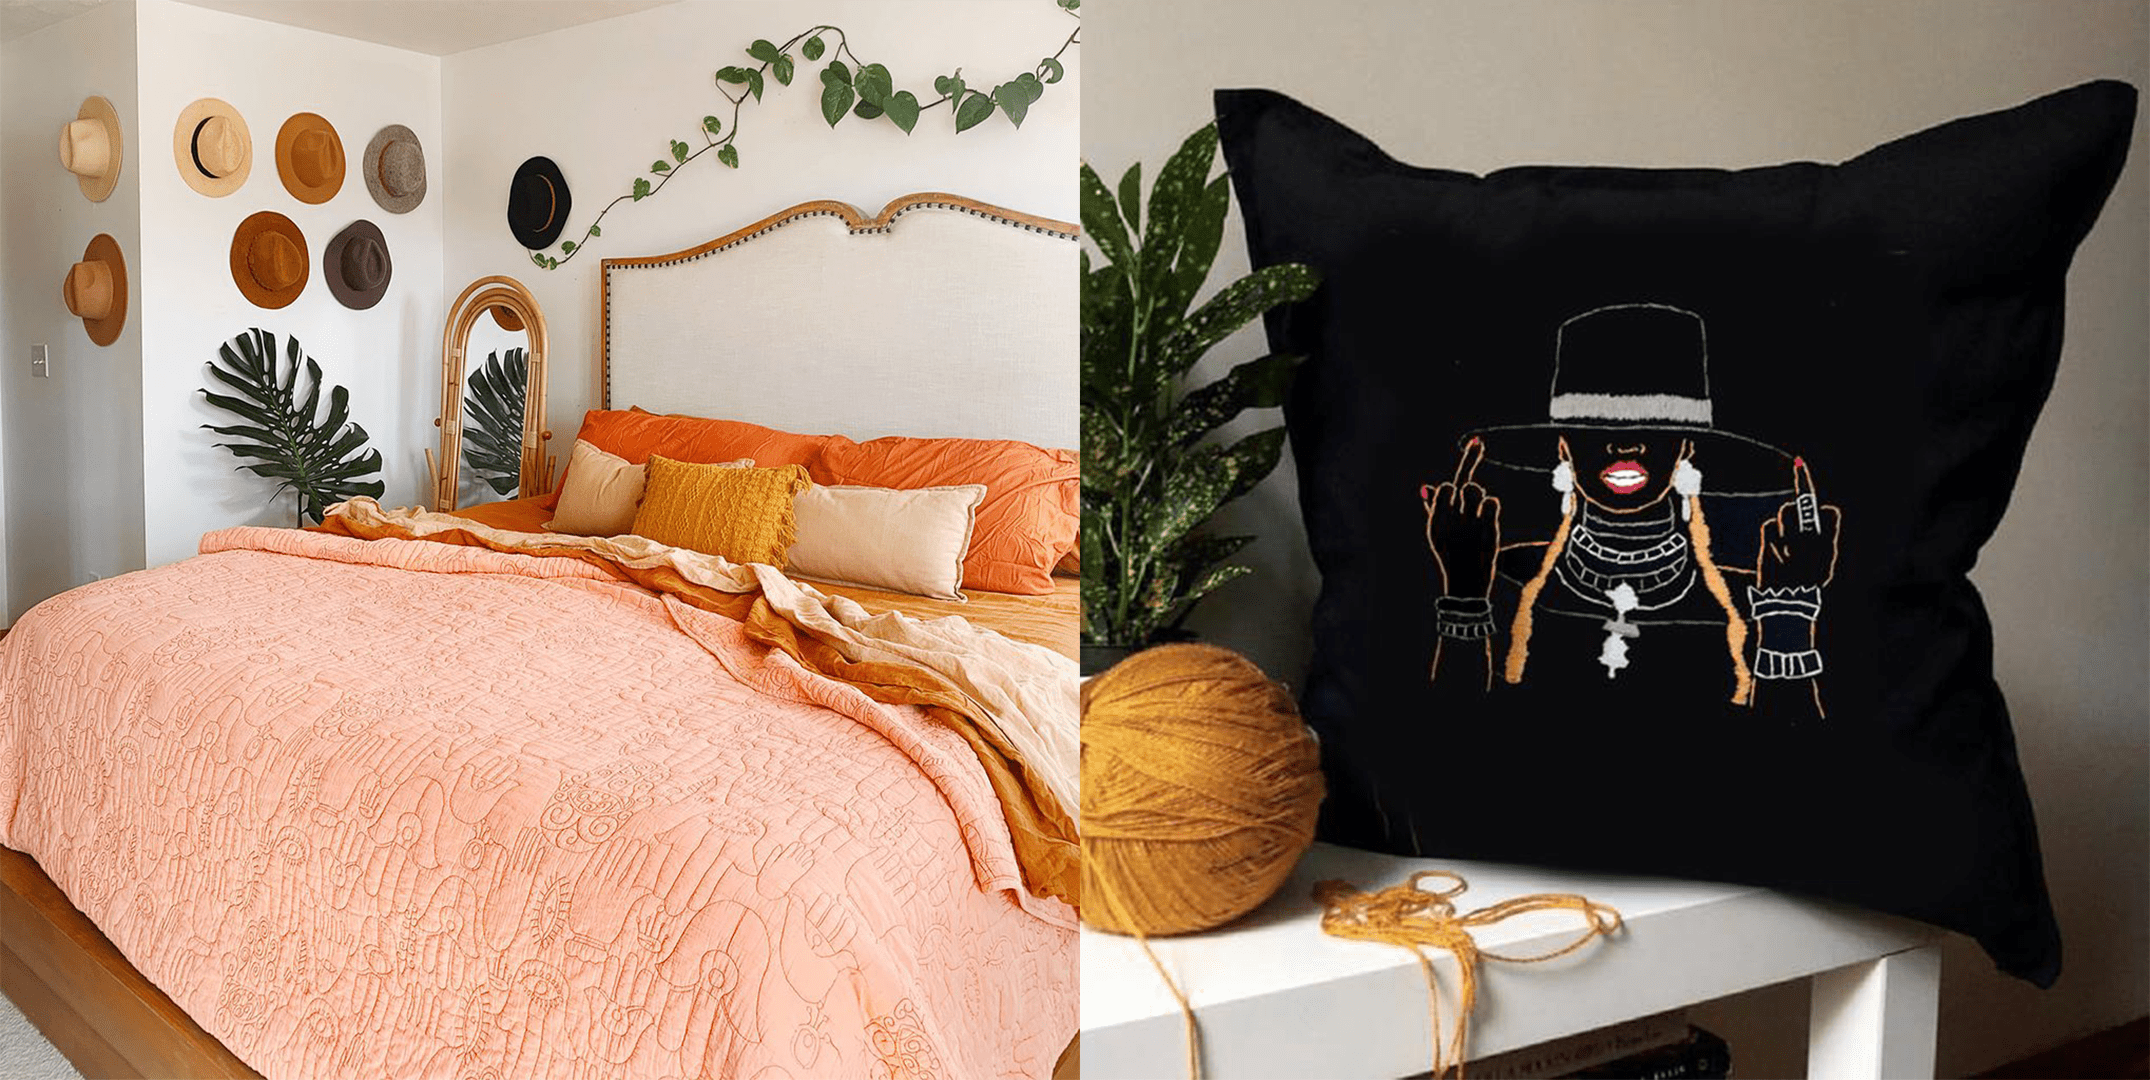 black owned bedding brands to support